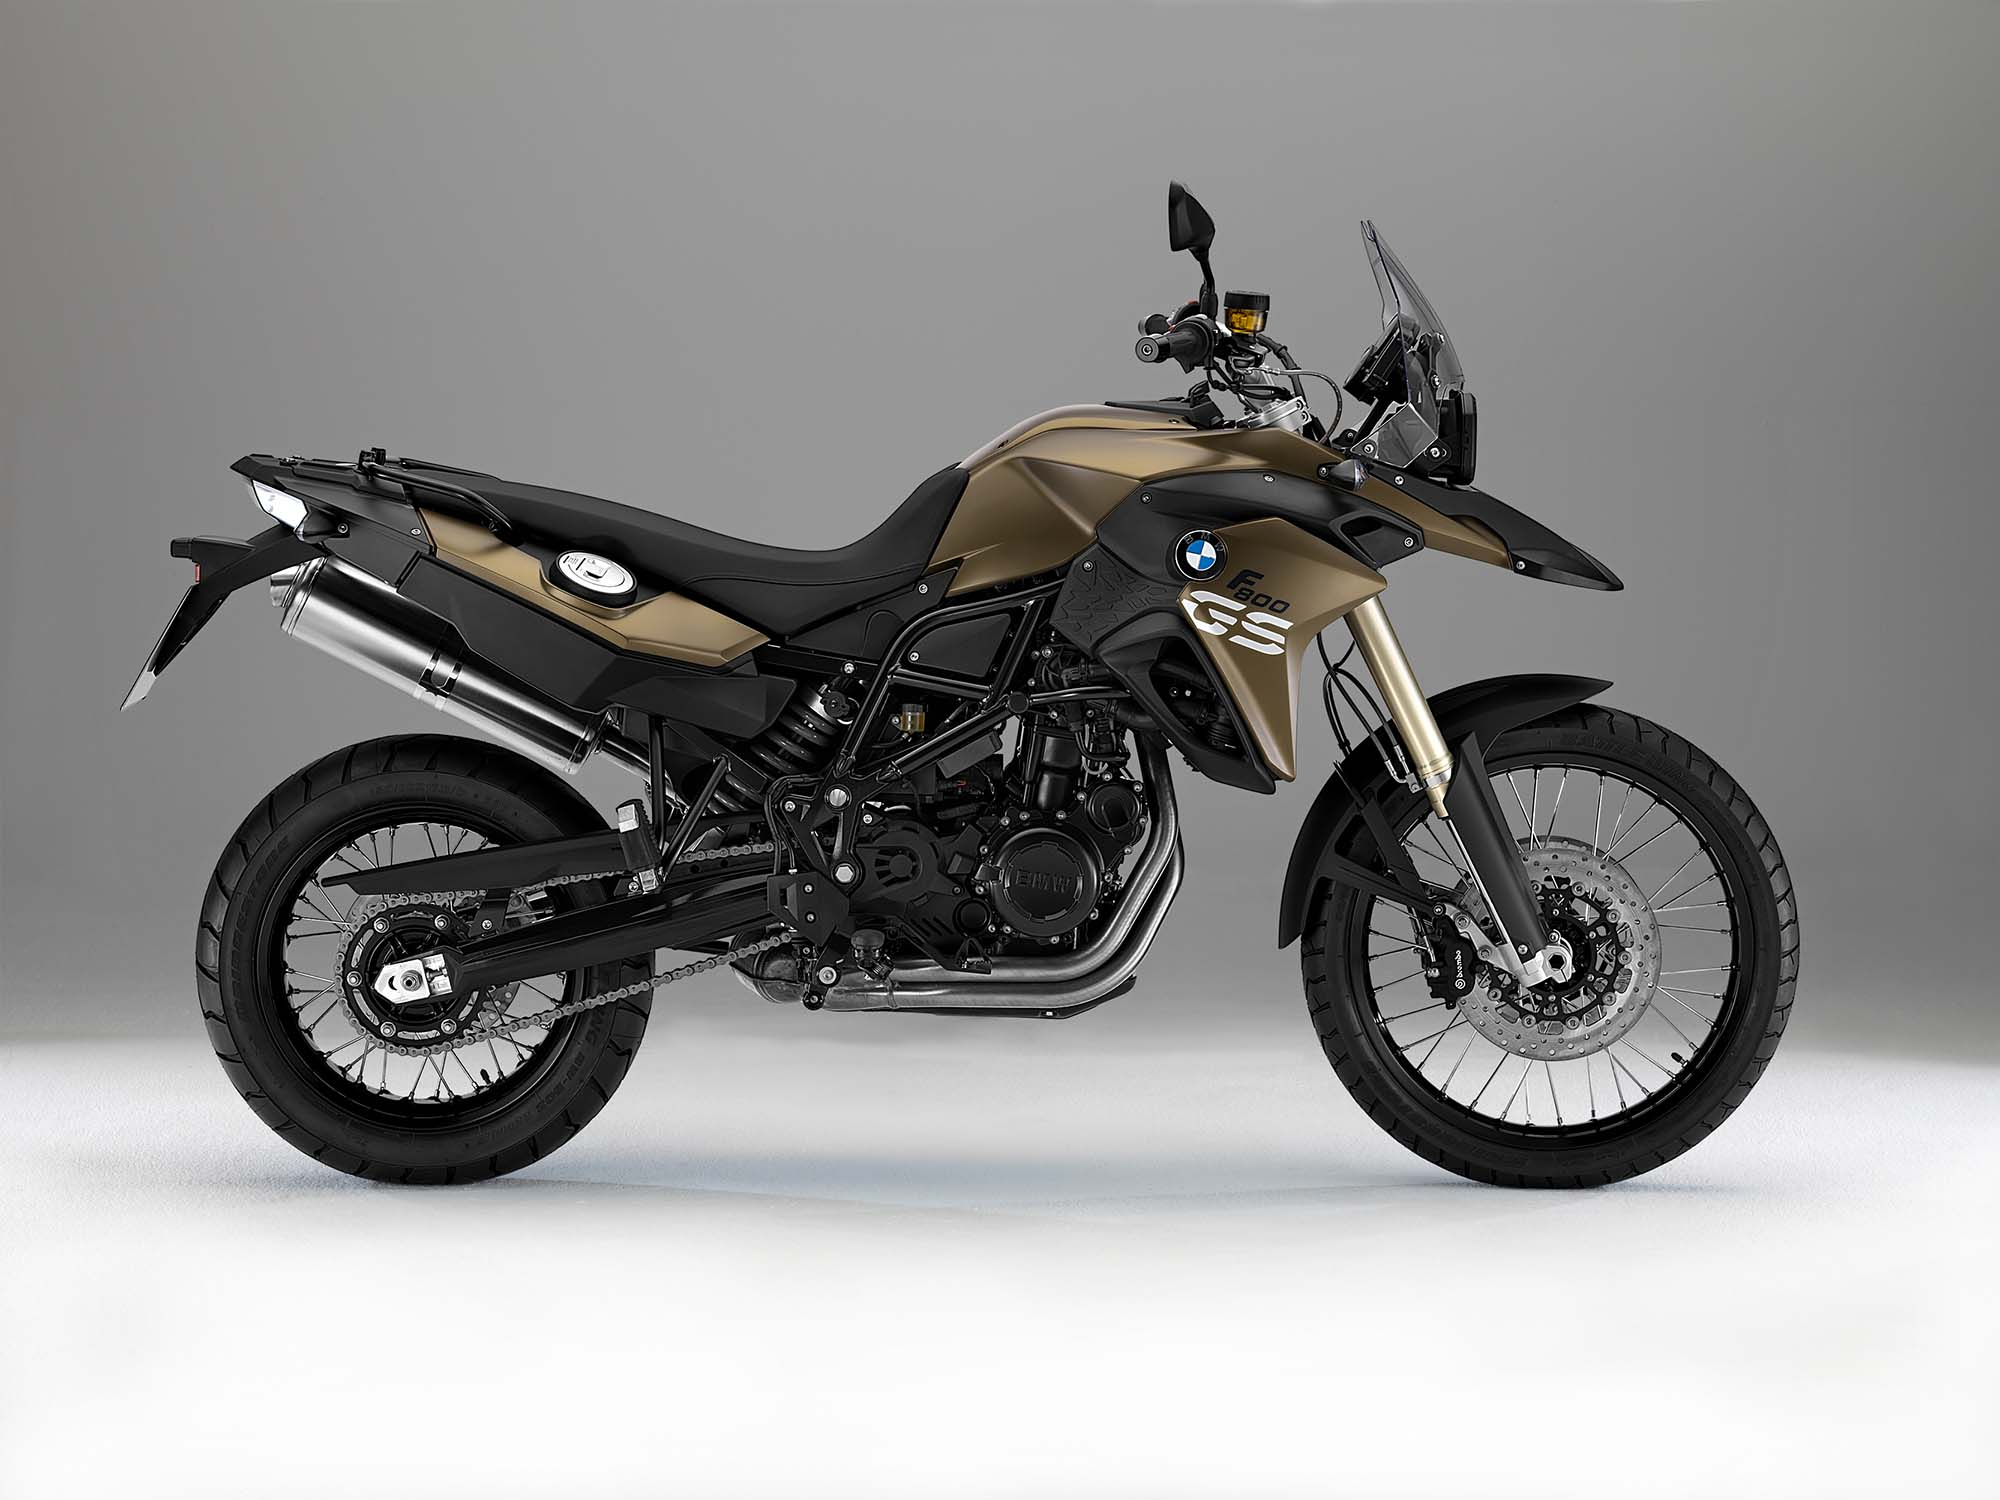 2013 Bmw F800gs Seat Height